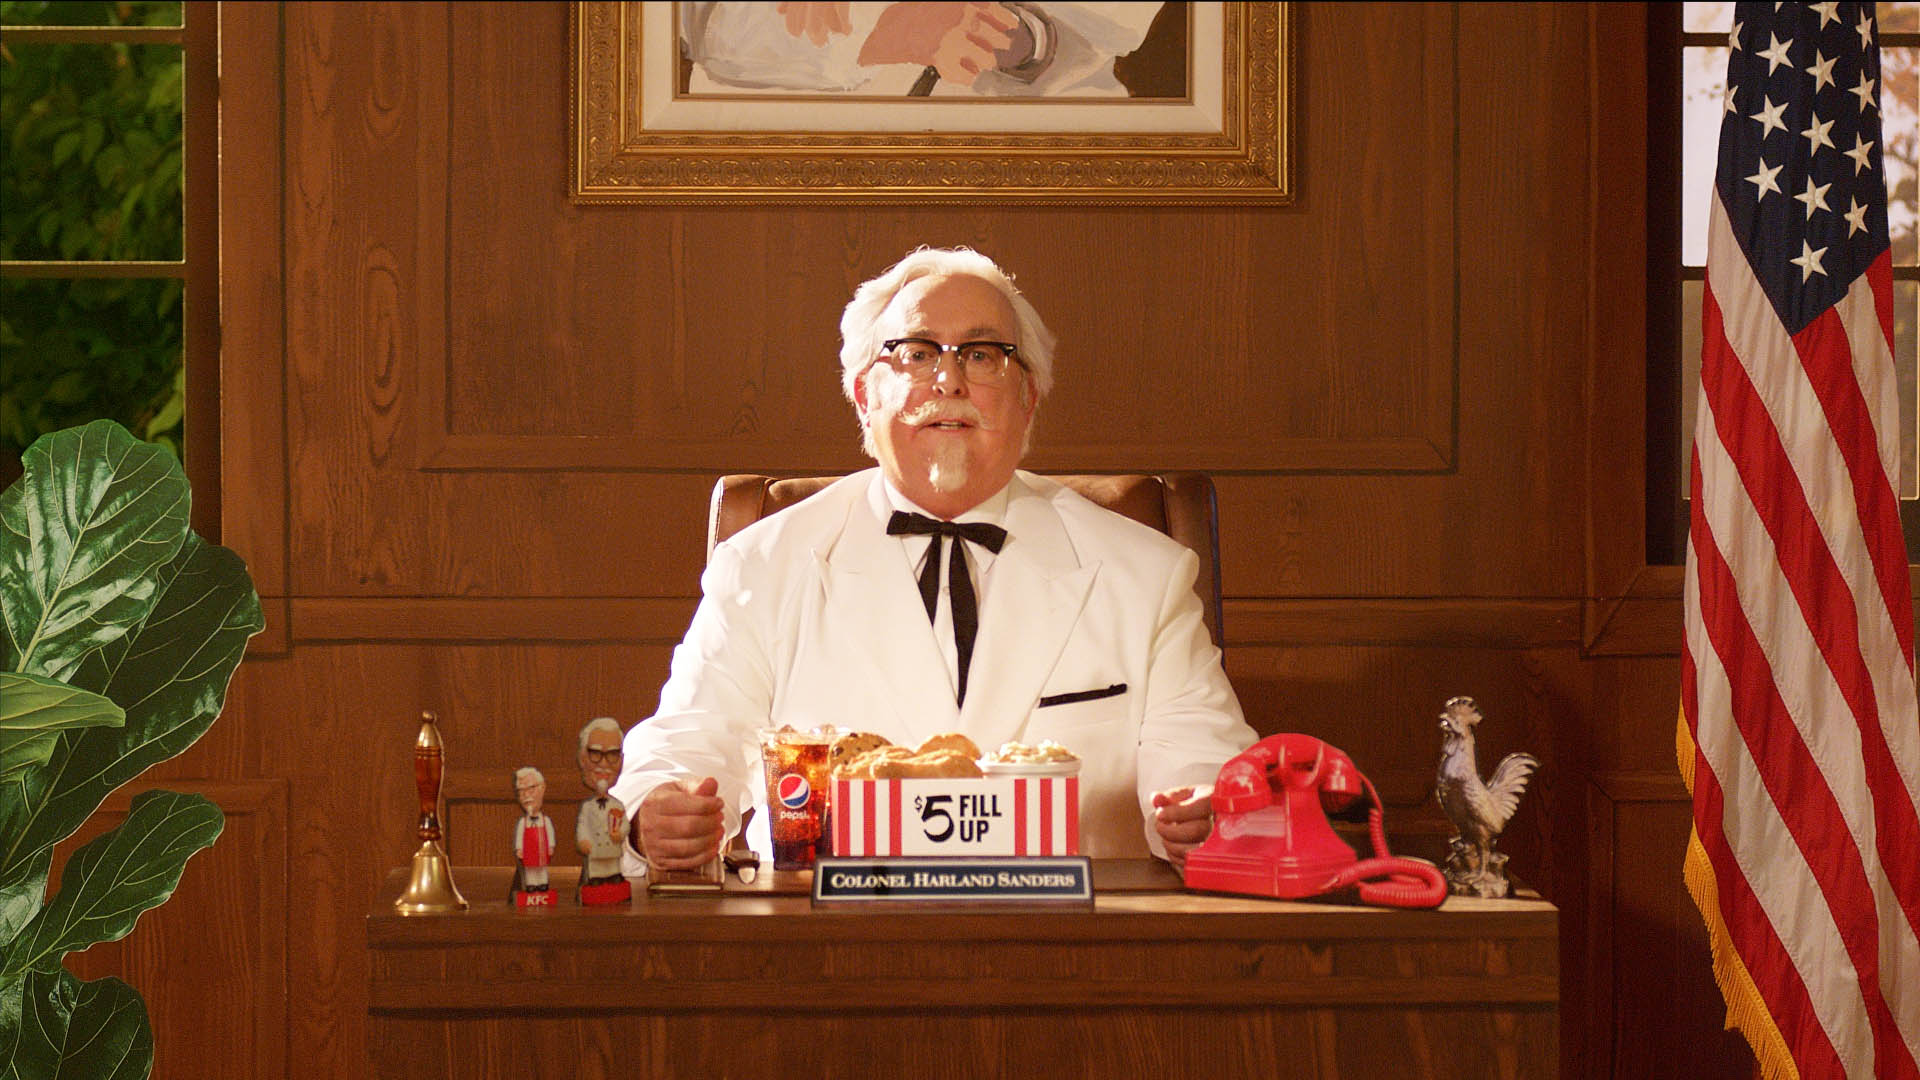 Kfc 5 Dollar Christmas Colonel 2020 KFC's new Colonel Sanders is an unknown actor